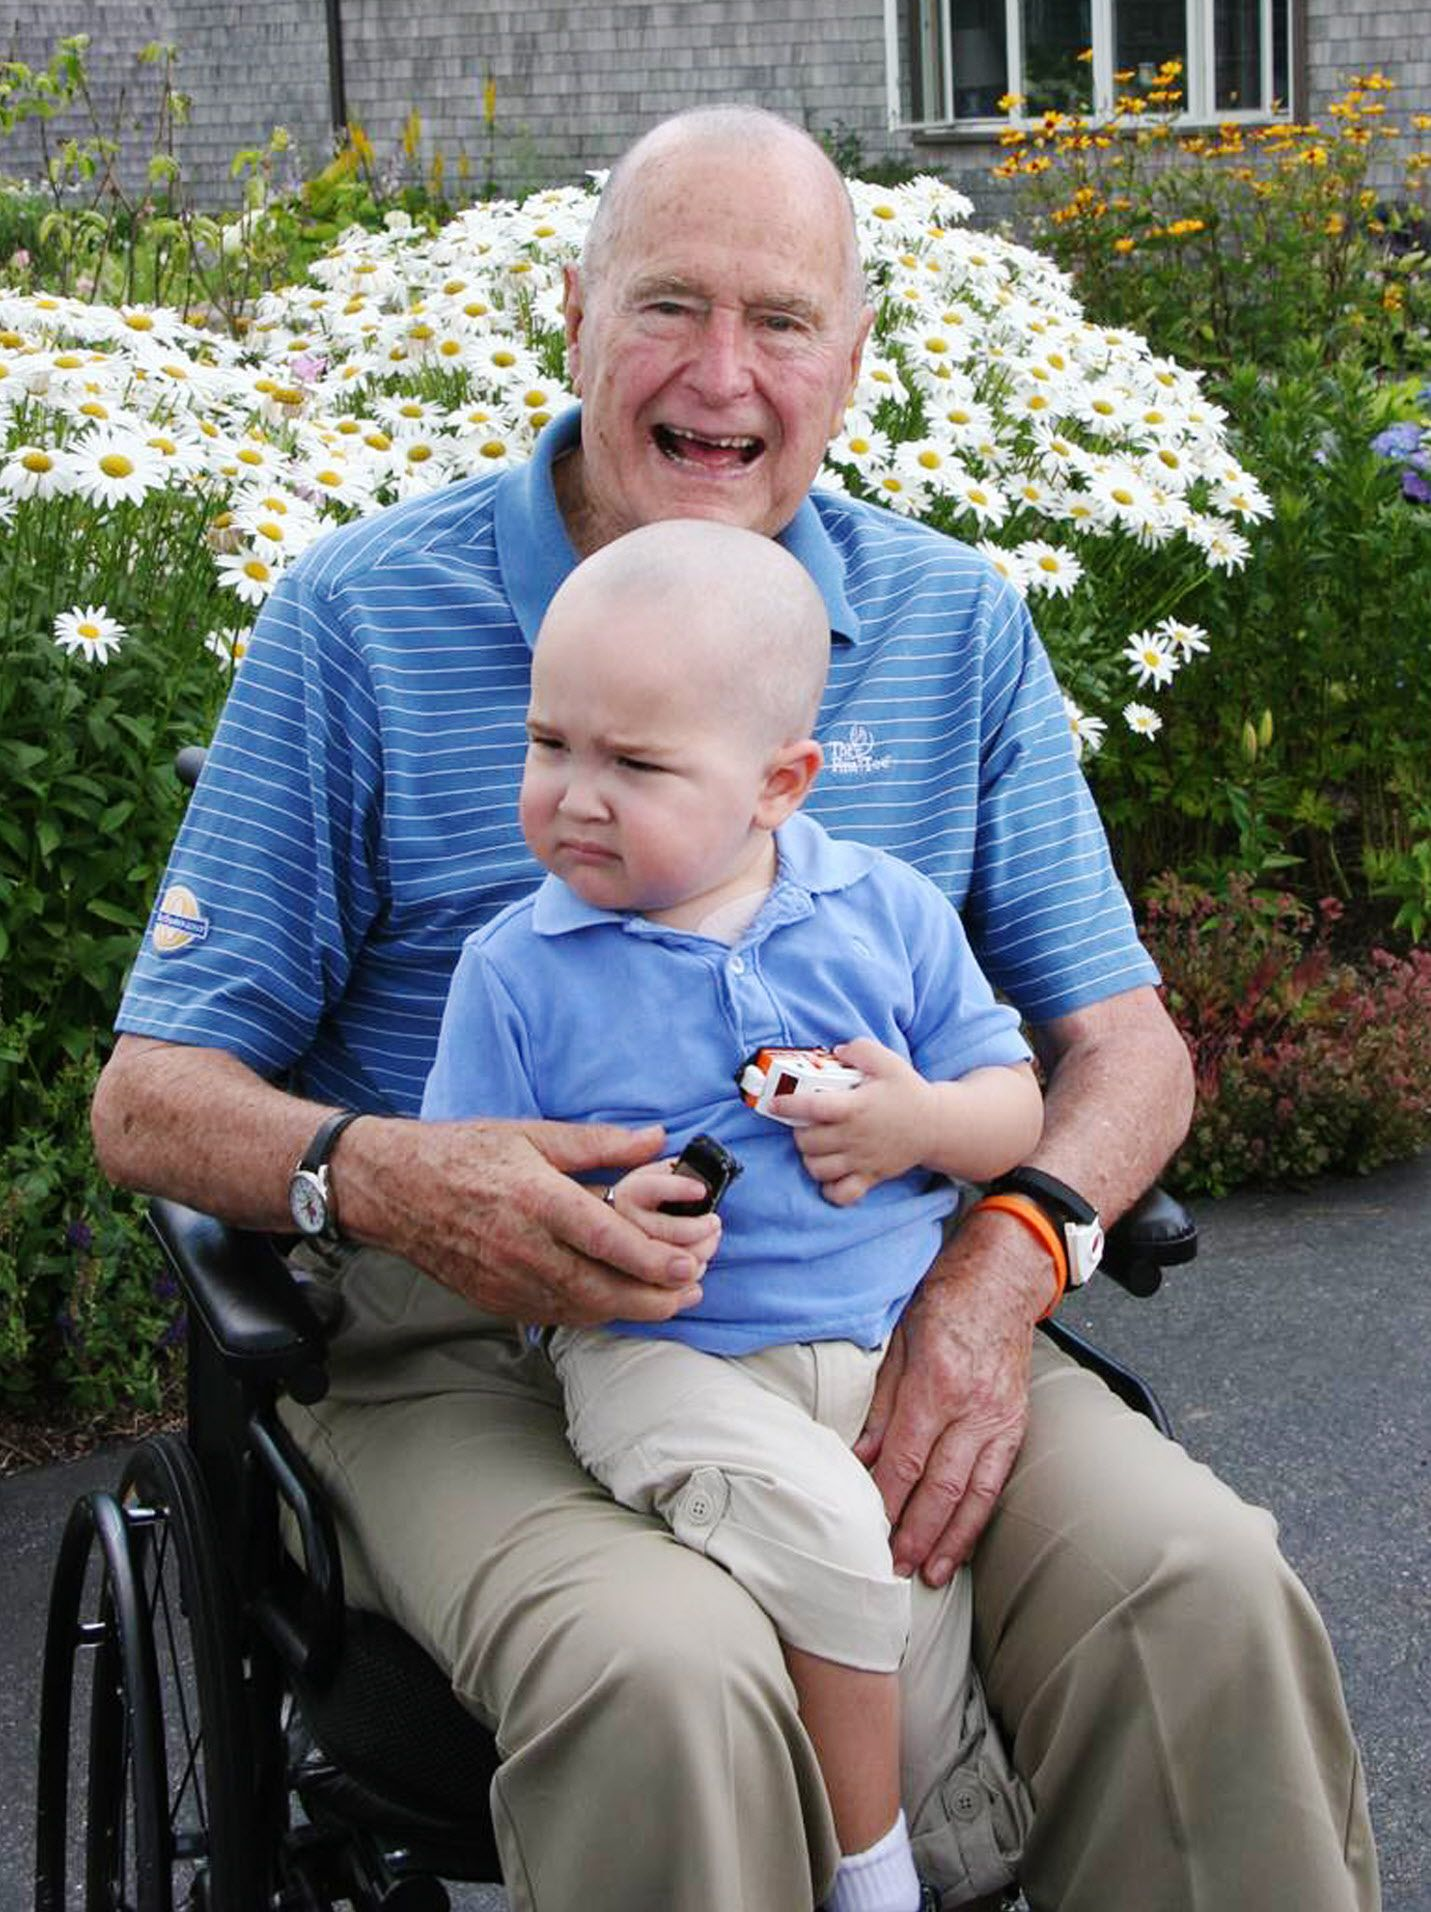 2013: President George H. W. Bush poses for a photo with his young friend Patrick (last name withheld at family's request), 2, in Kennebunkport, Maine. The former president joined members of his Secret Service detail in shaving his head to show solidarity for Patrick, who is the son of one of the agents. The child was undergoing treatment for leukemia and losing his hair as a result.